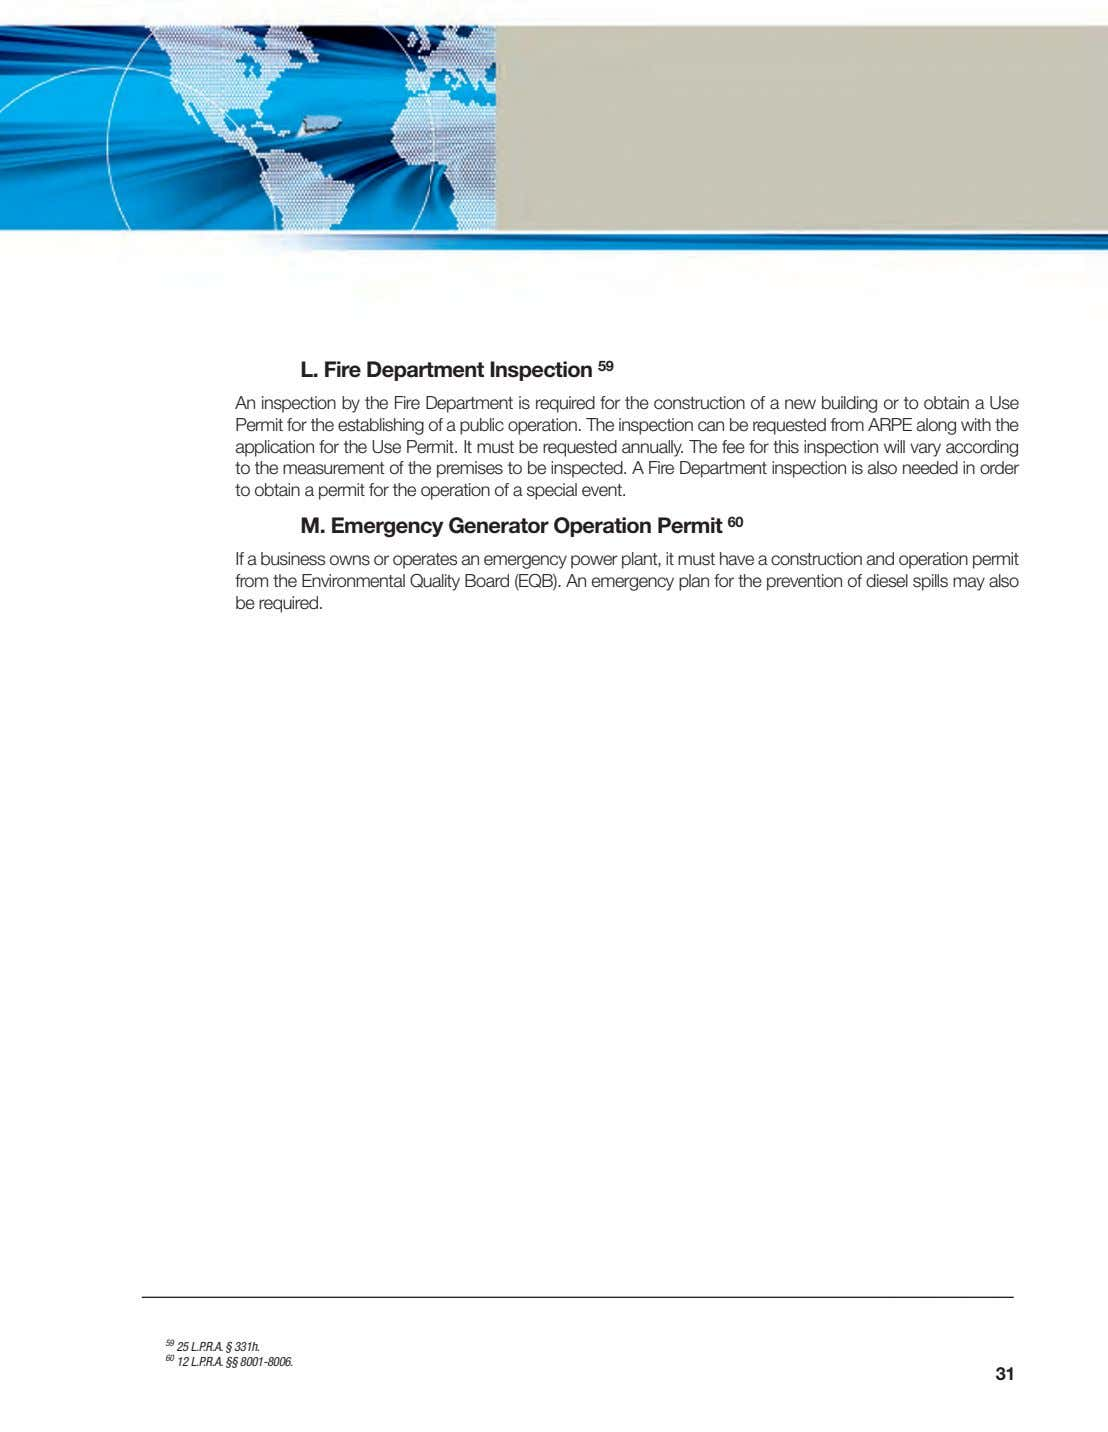 L. Fire Department Inspection 59 An inspection by the Fire Department is required for the